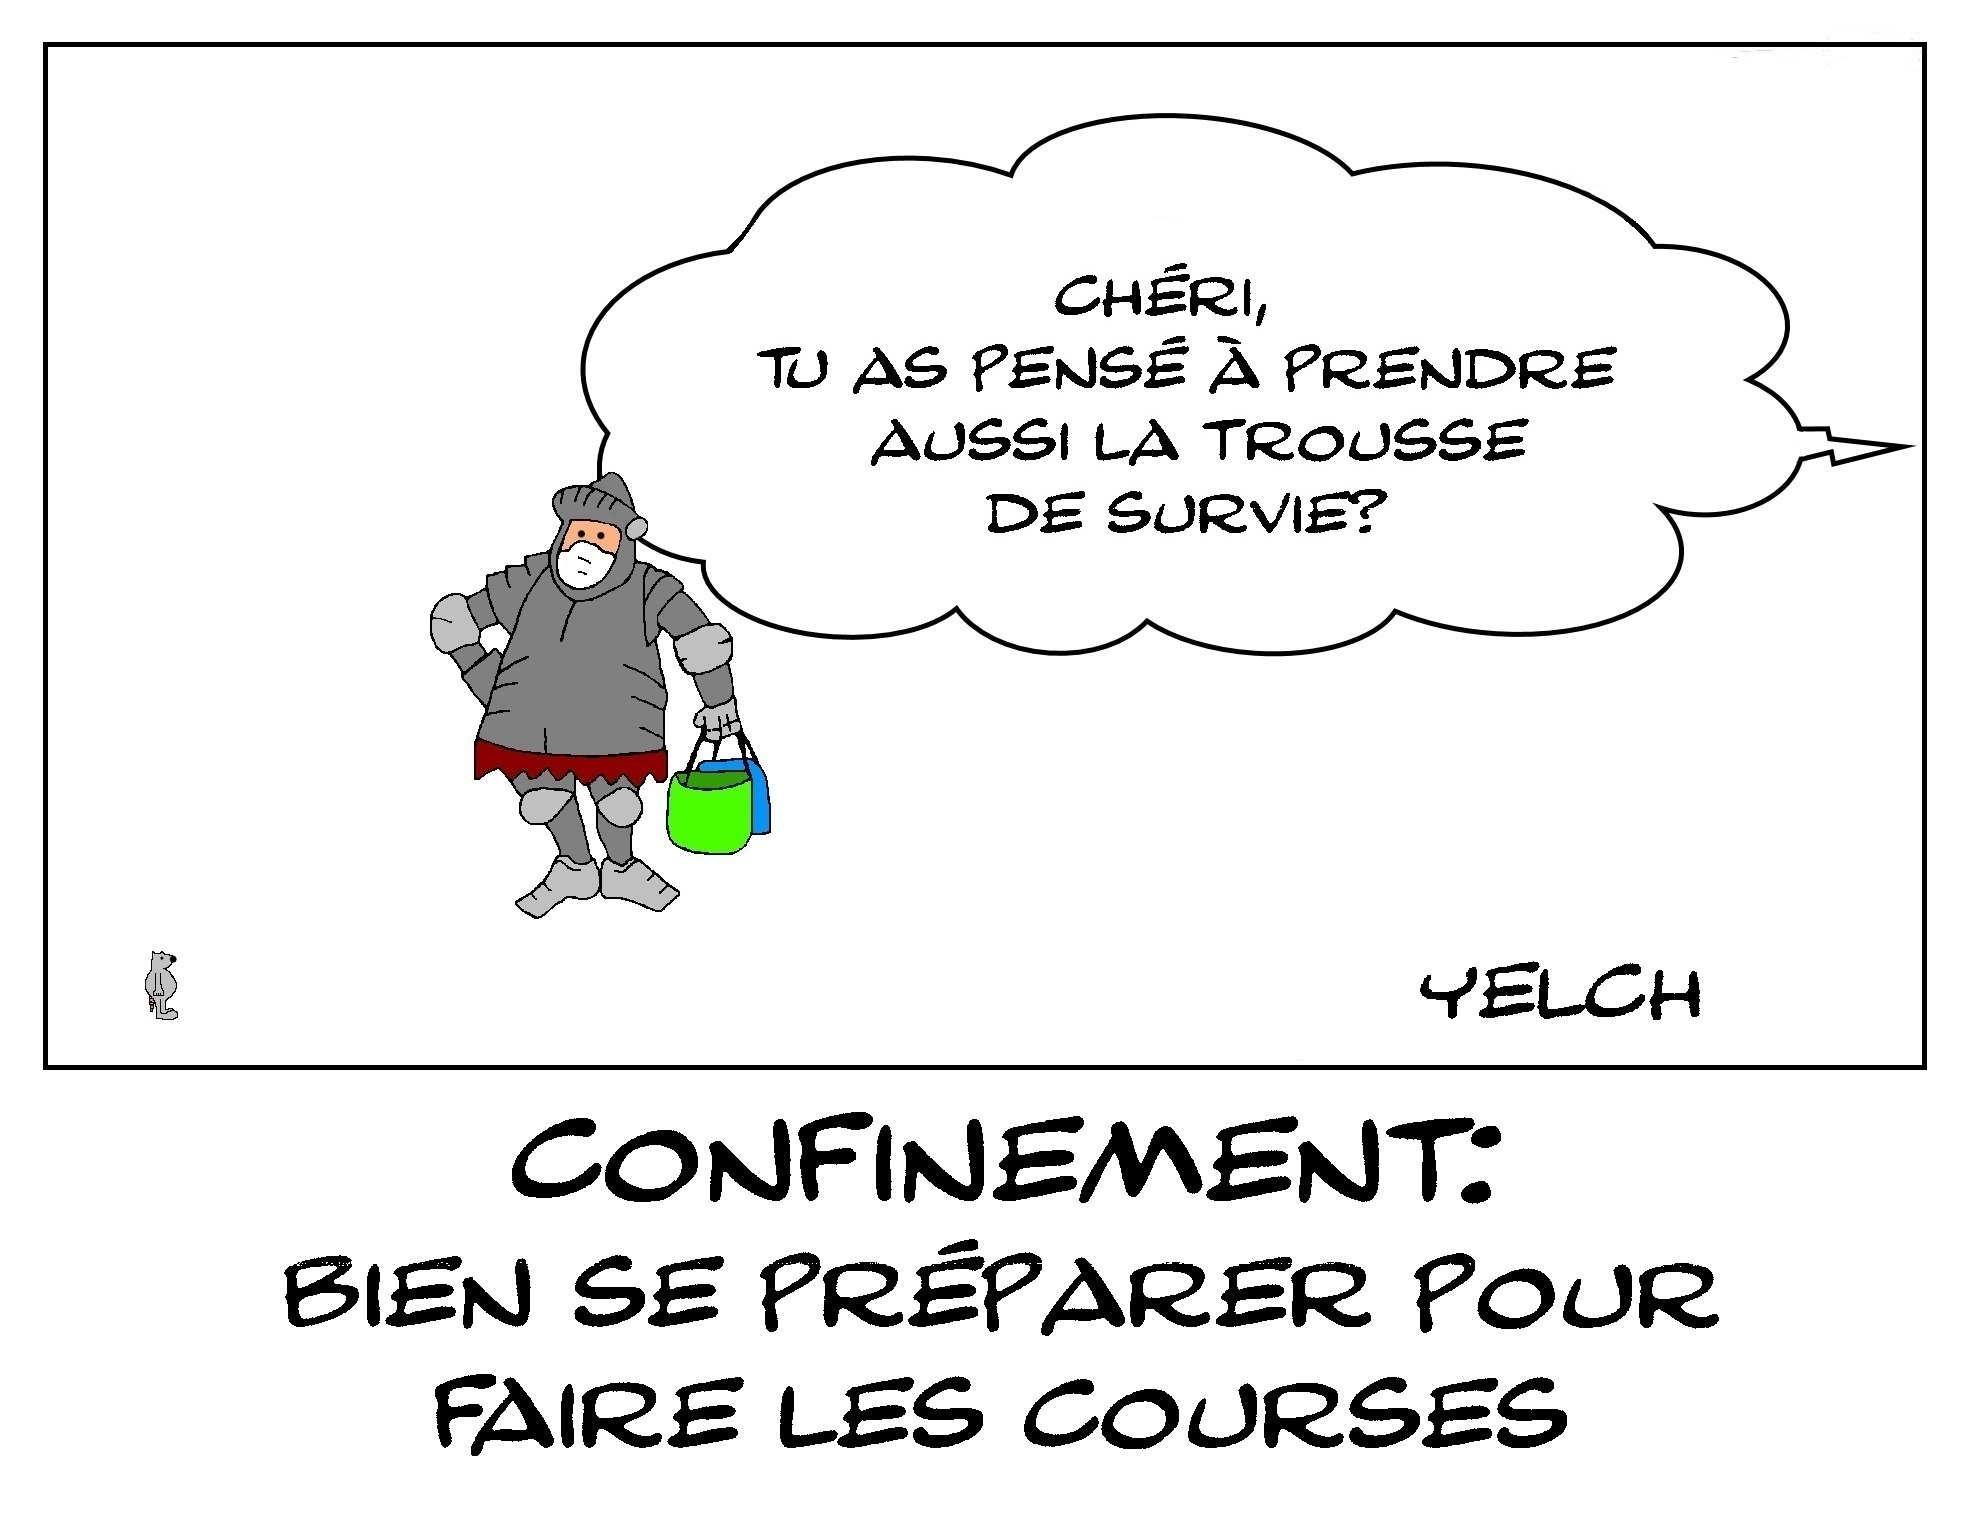 LES COURSES DU CONFINEMENT